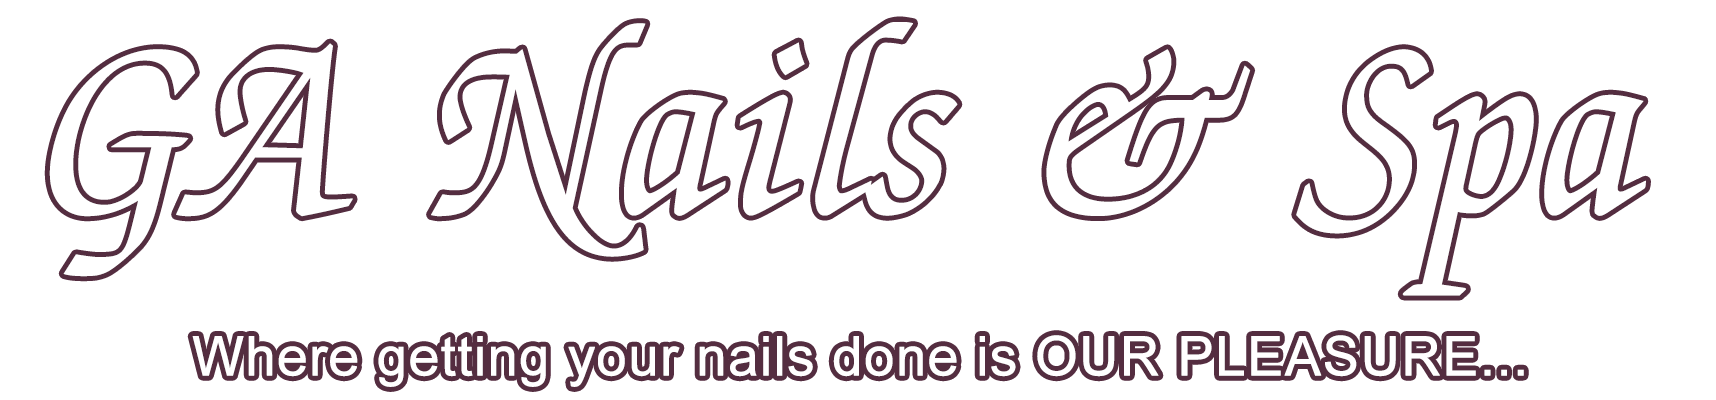 Services at Ga Nails & Spa - Nail Salon in Braselton GA 30517